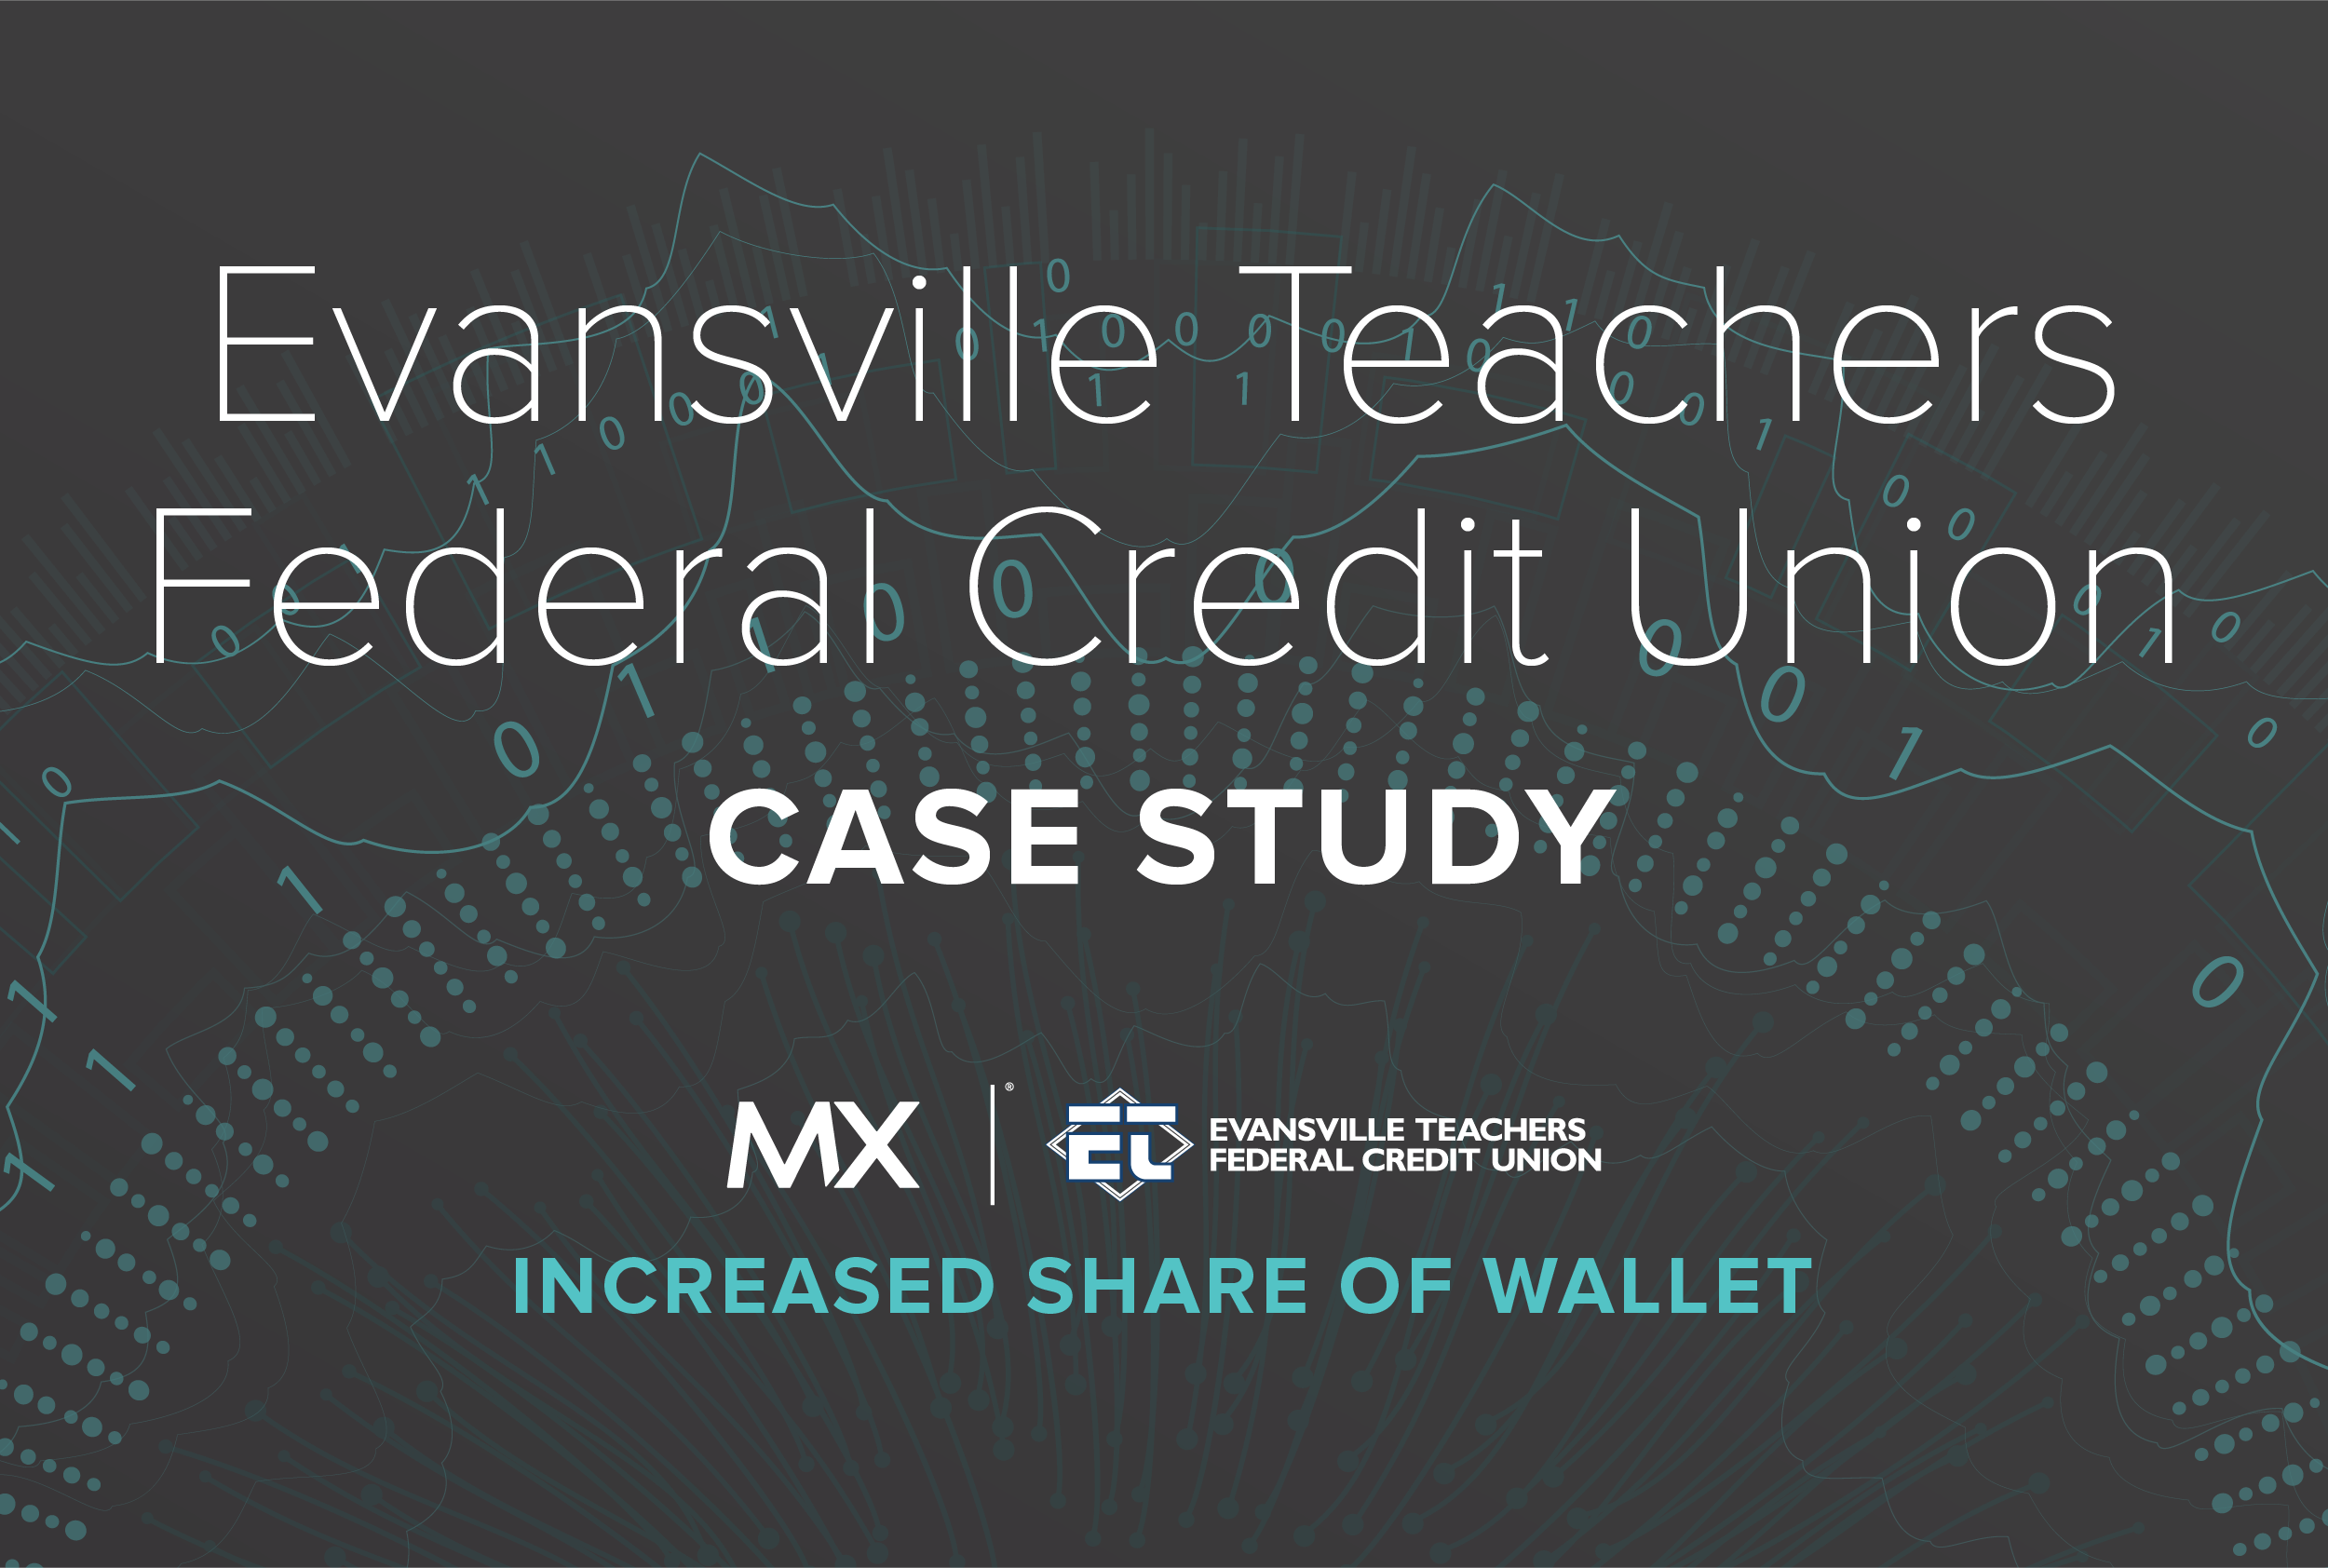 Case Study: Evansville Teachers FCU